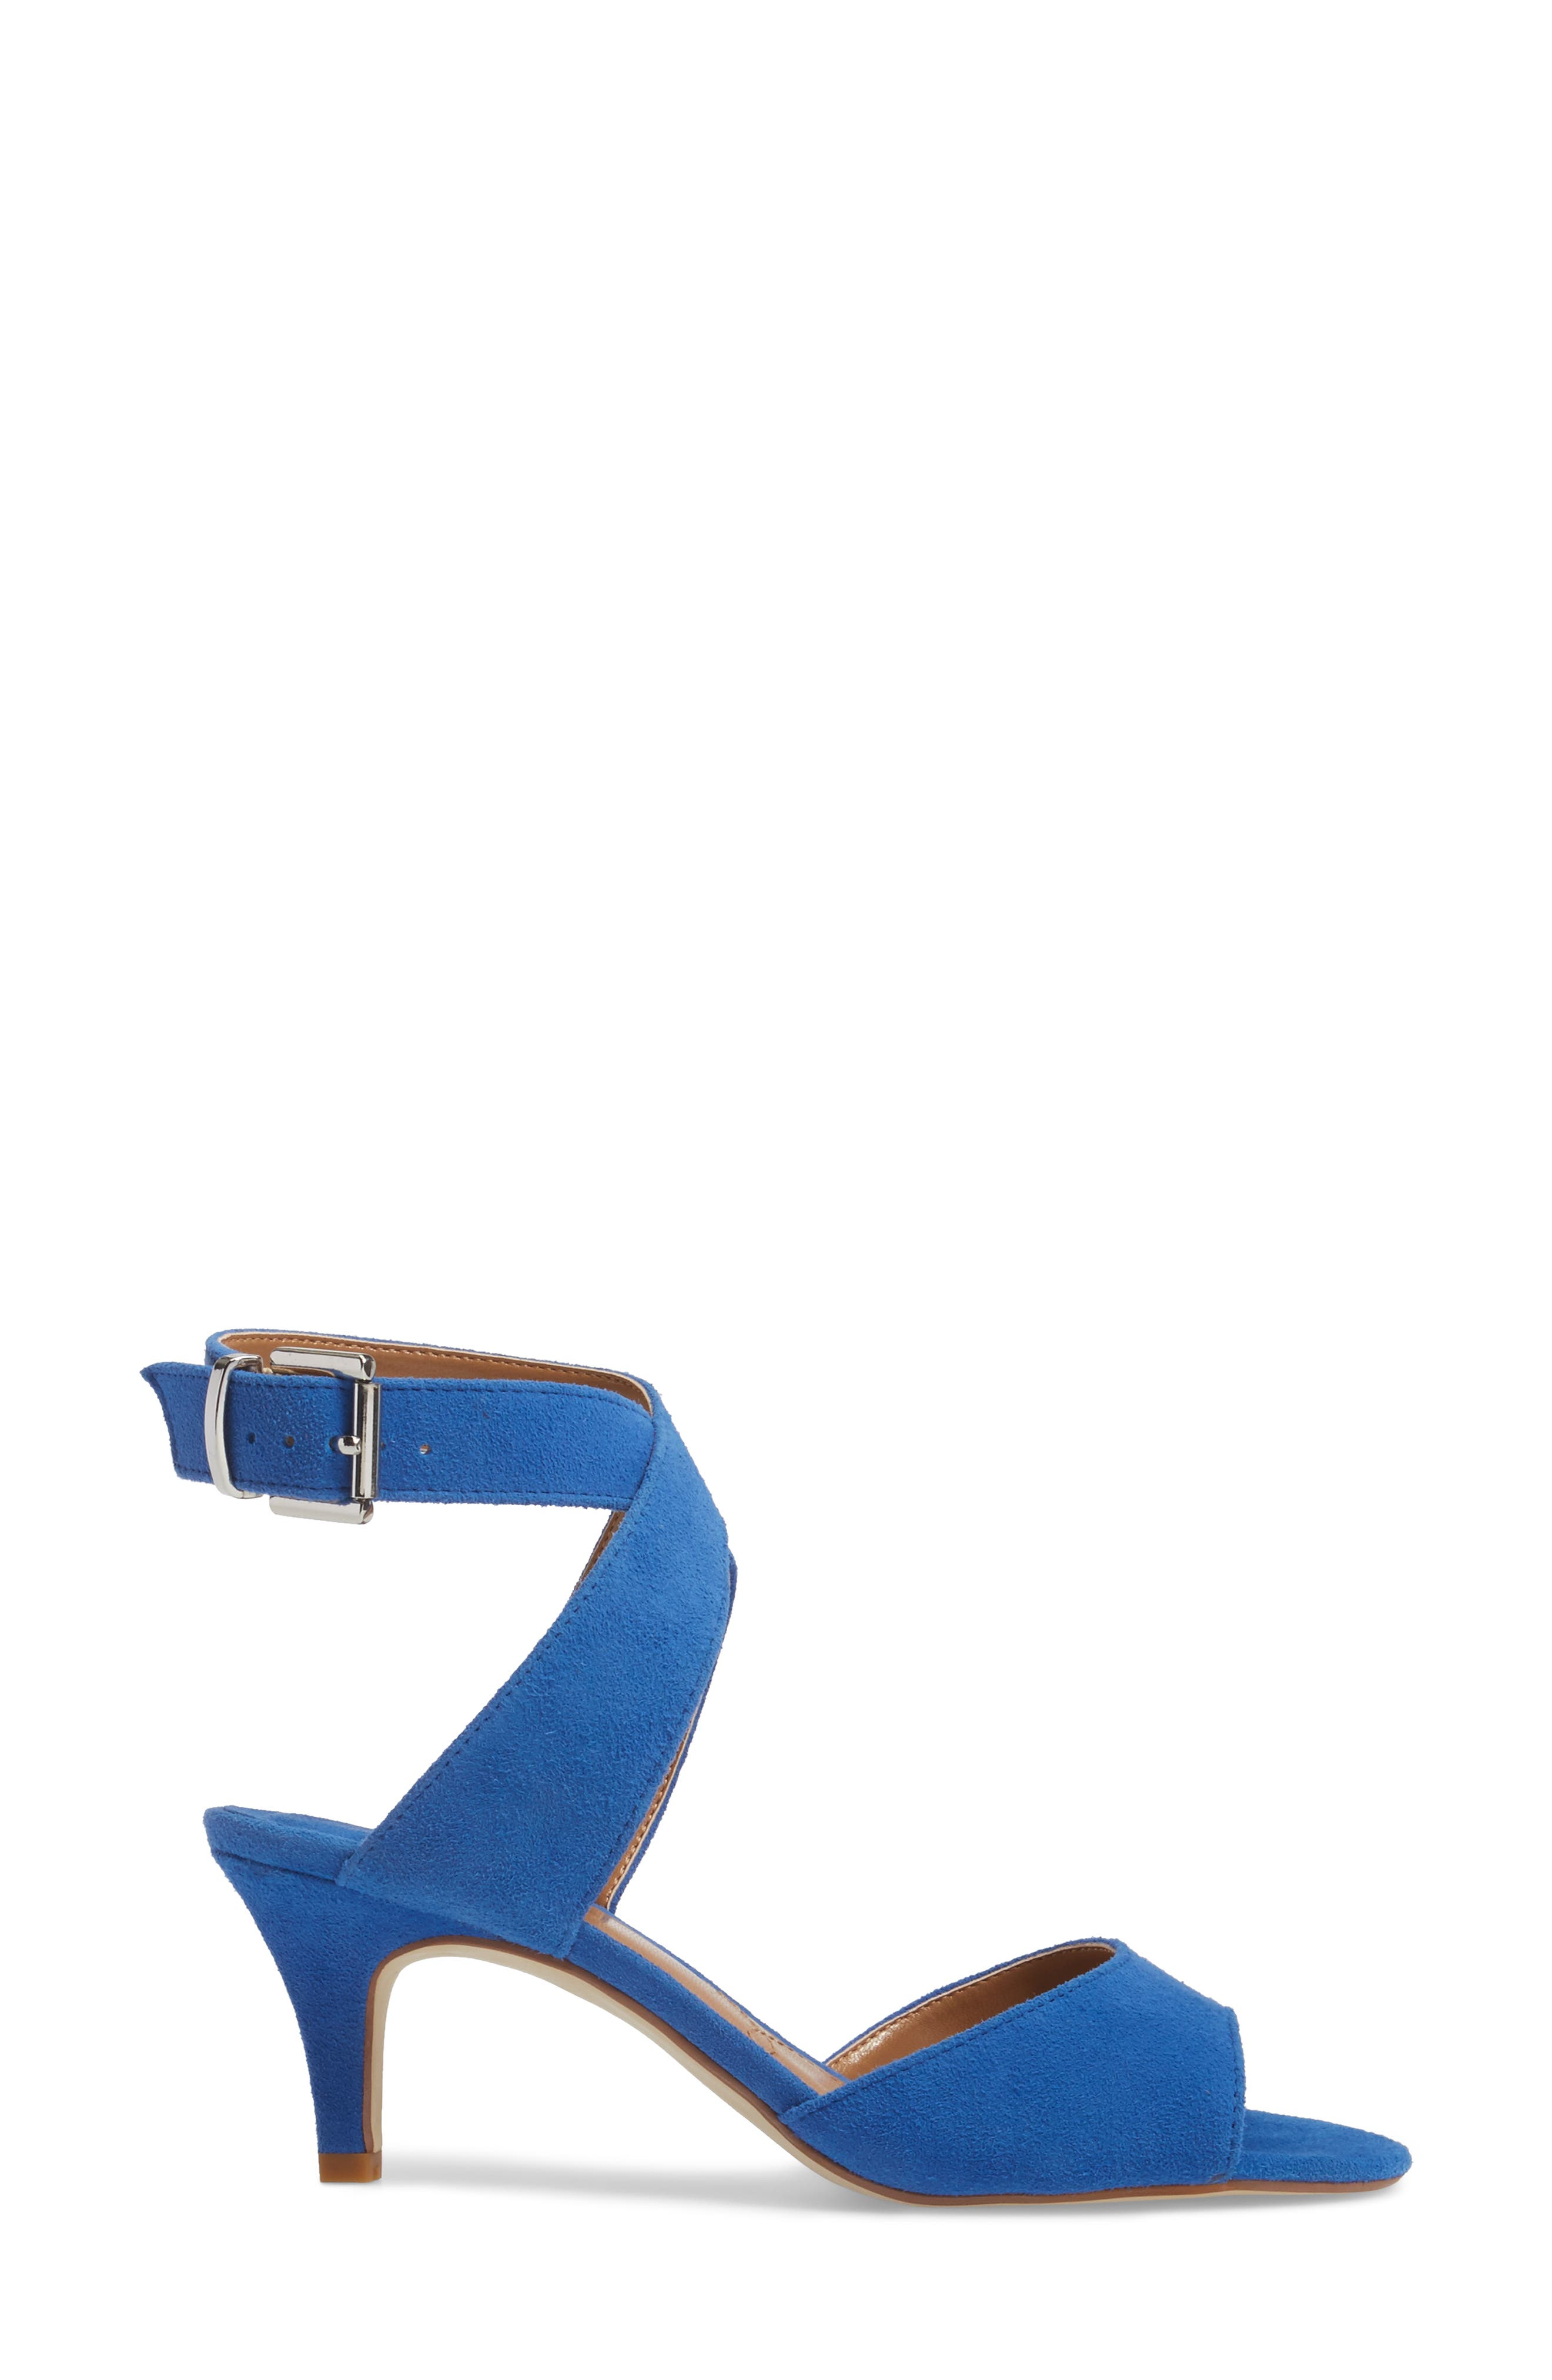 'Soncino' Ankle Strap Sandal,                             Alternate thumbnail 3, color,                             Blue Fabric